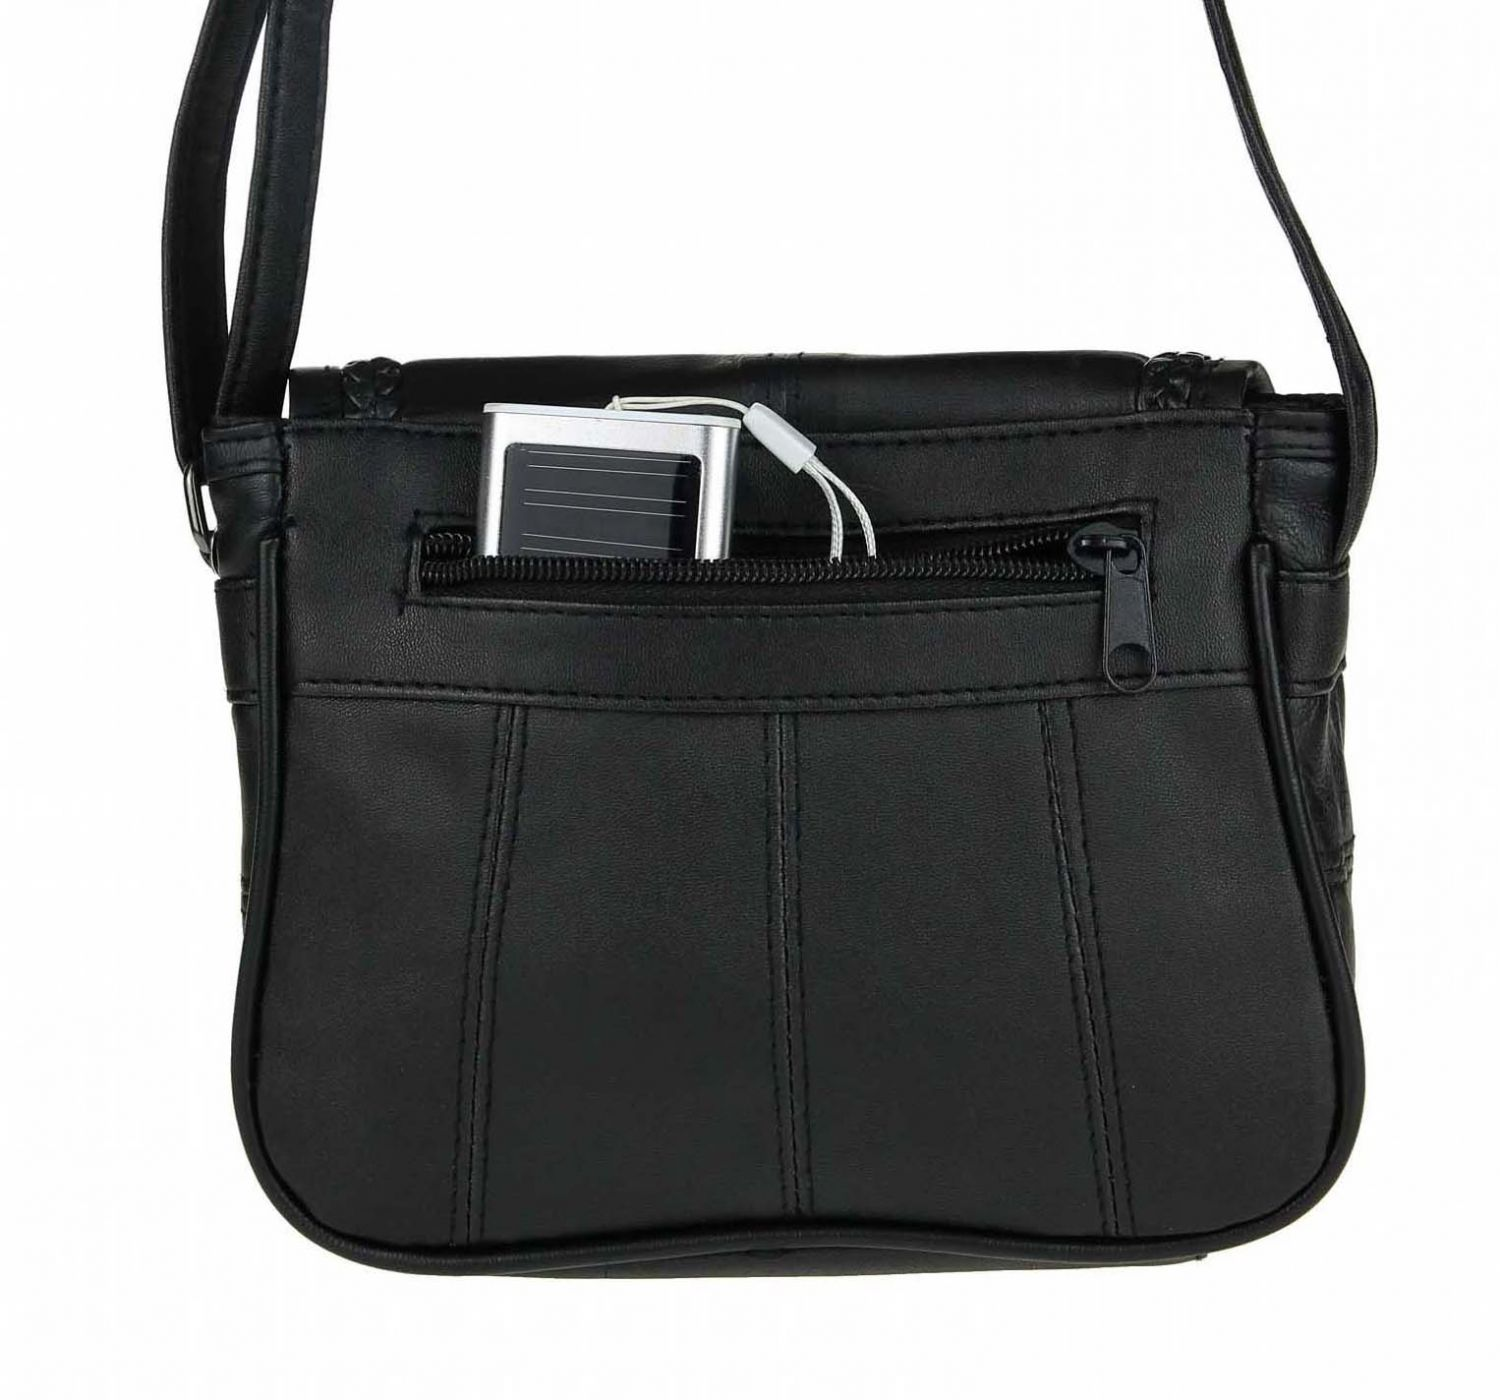 luxus damen nappa leder hand tasche schultertasche clutch crossover bag street ebay. Black Bedroom Furniture Sets. Home Design Ideas